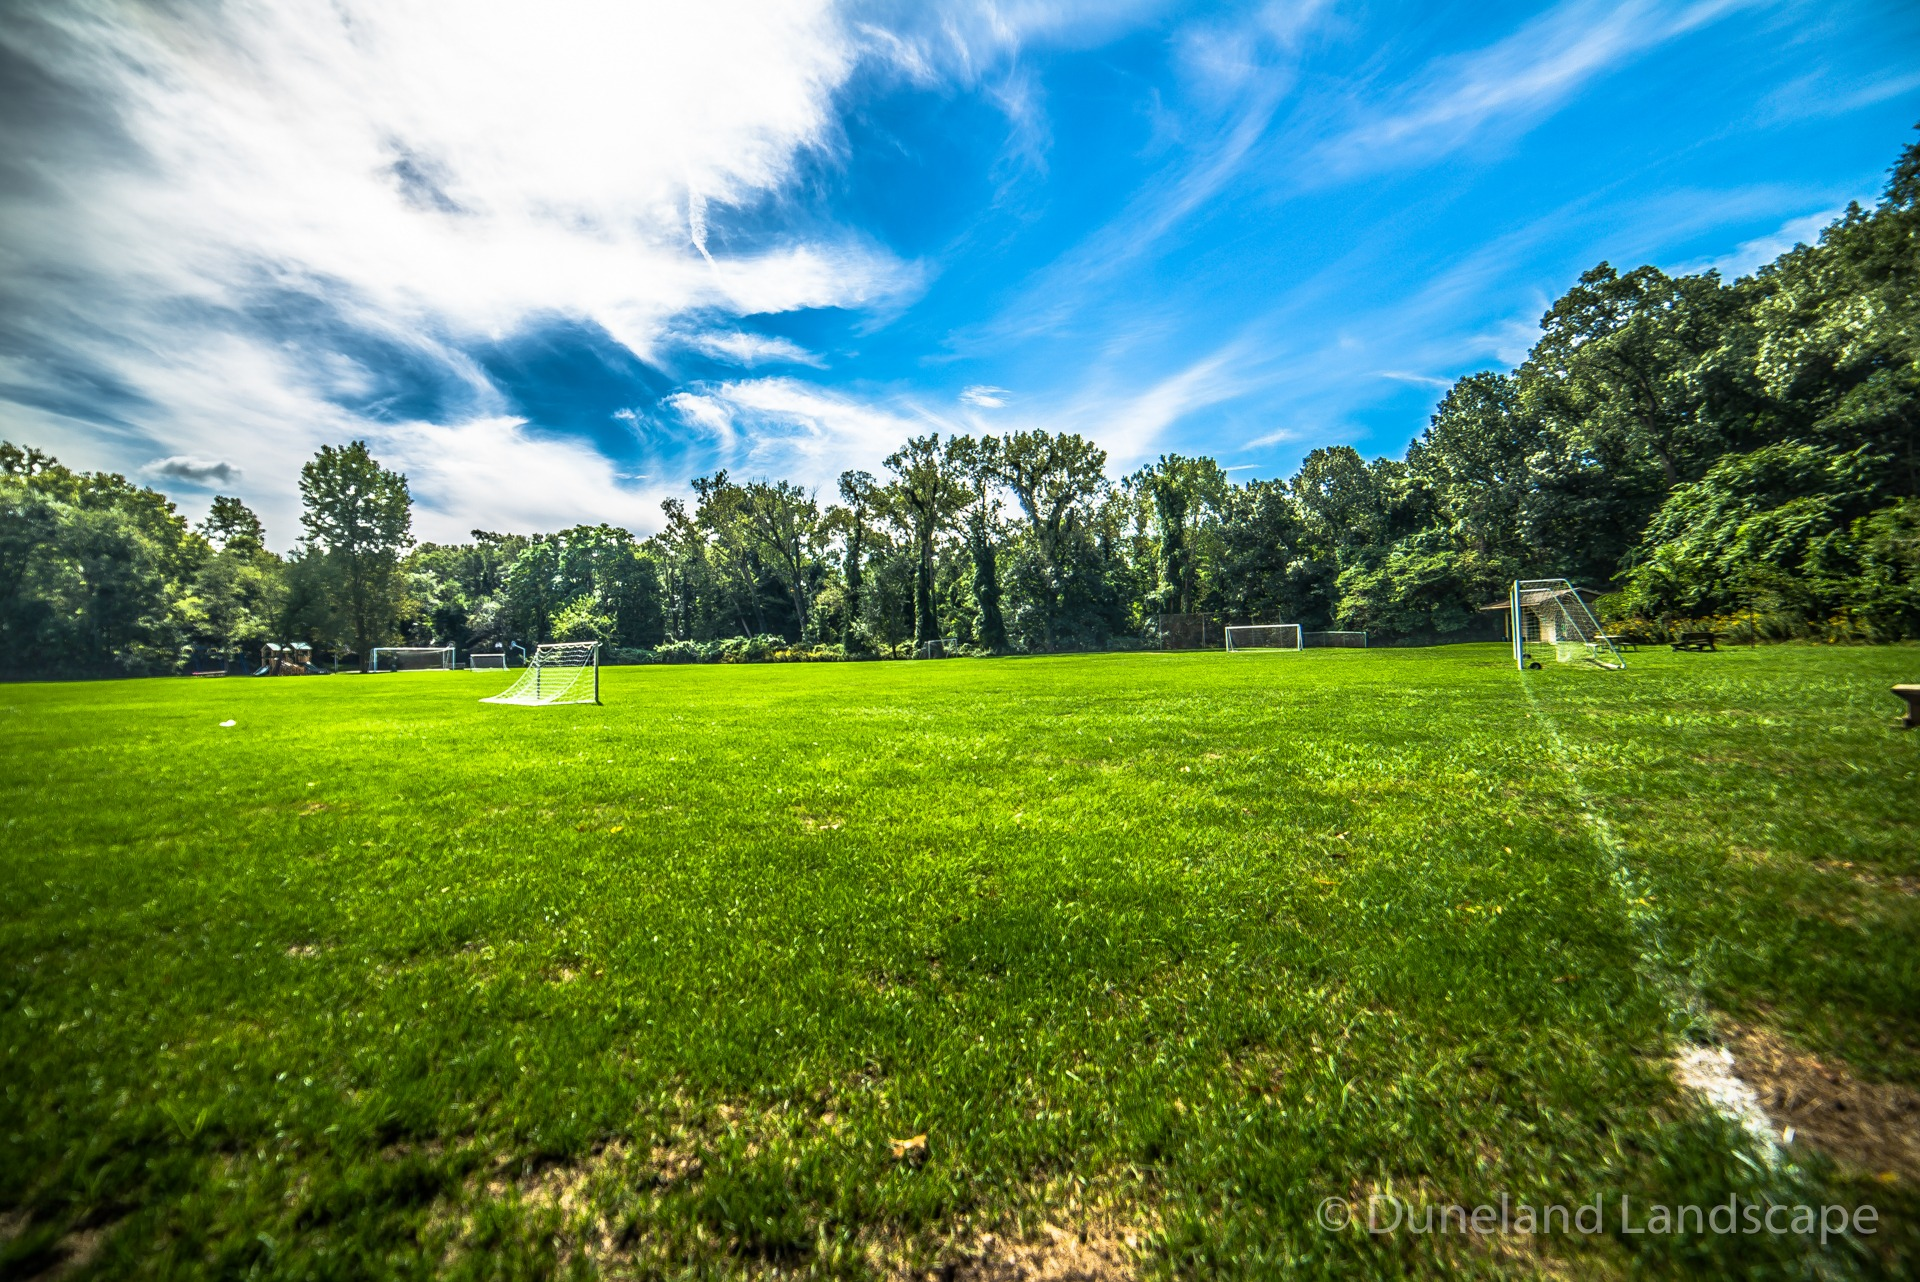 park soccer field grass maintenance